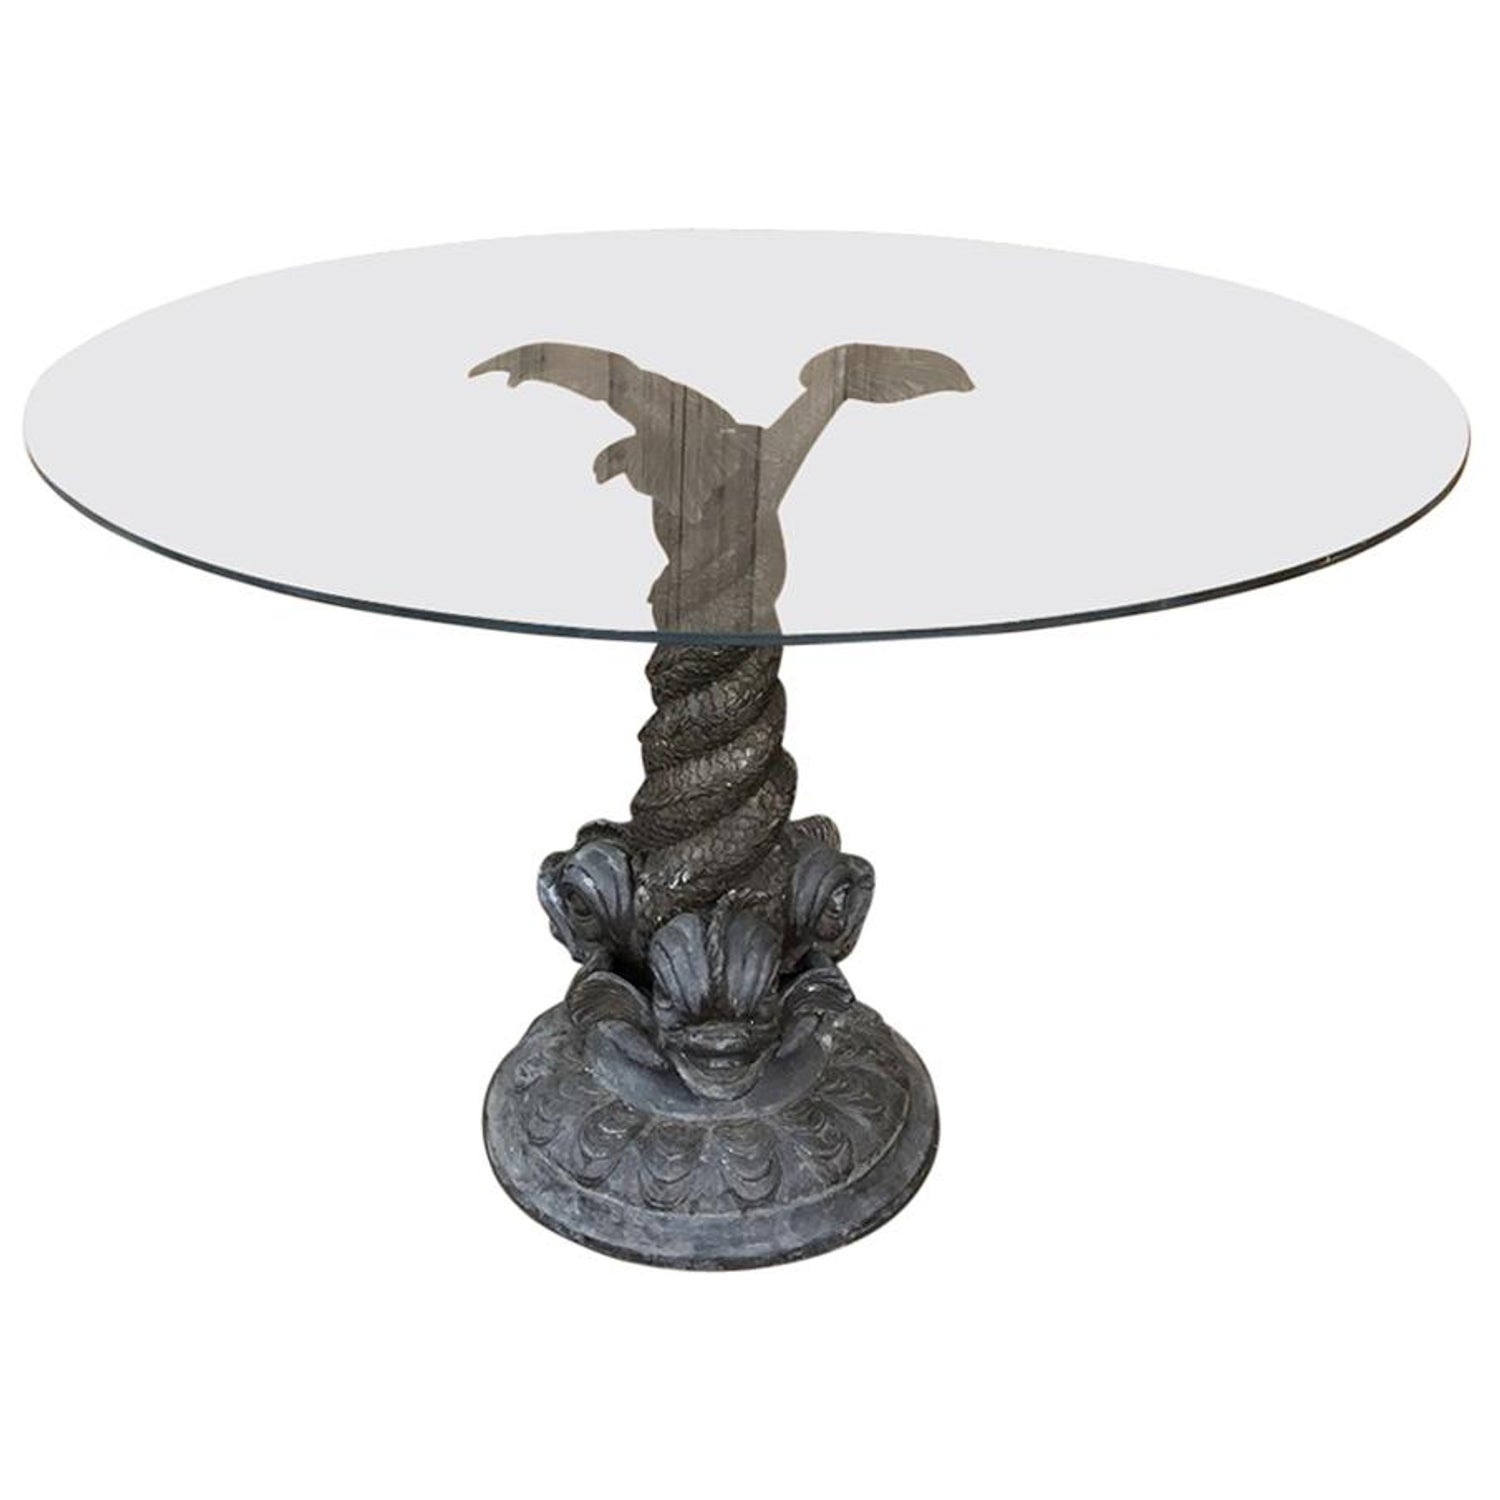 century bronze dolphin glass top coffee table for master end folding sofa homemade wooden dog dining with chairs homesense locations toronto patio rosewood pallet yard furniture